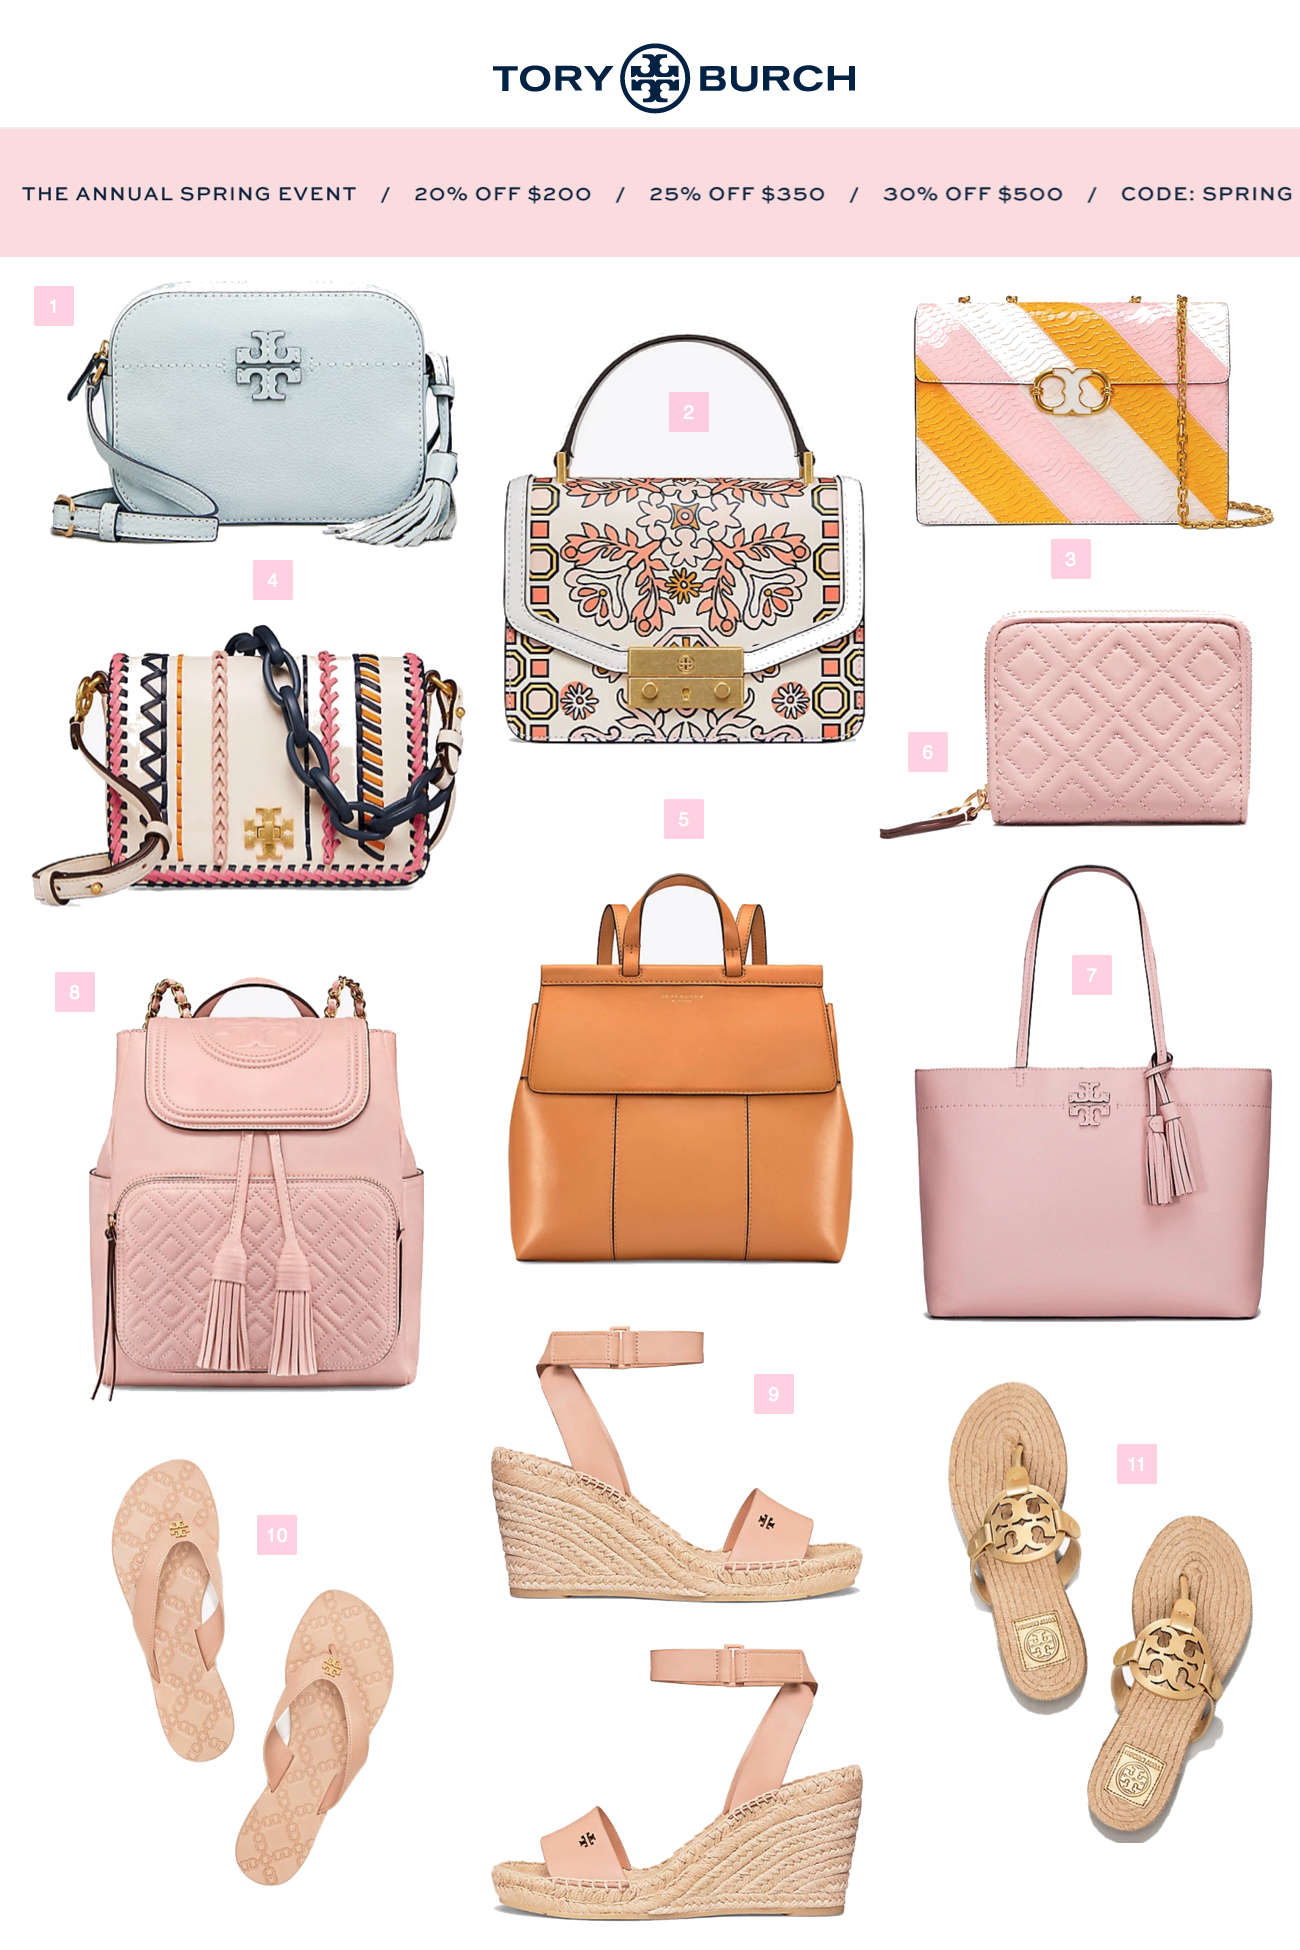 8d4baa2a311 Tory Burch Spring Sale 20% to 30% off - SHOP DANDY